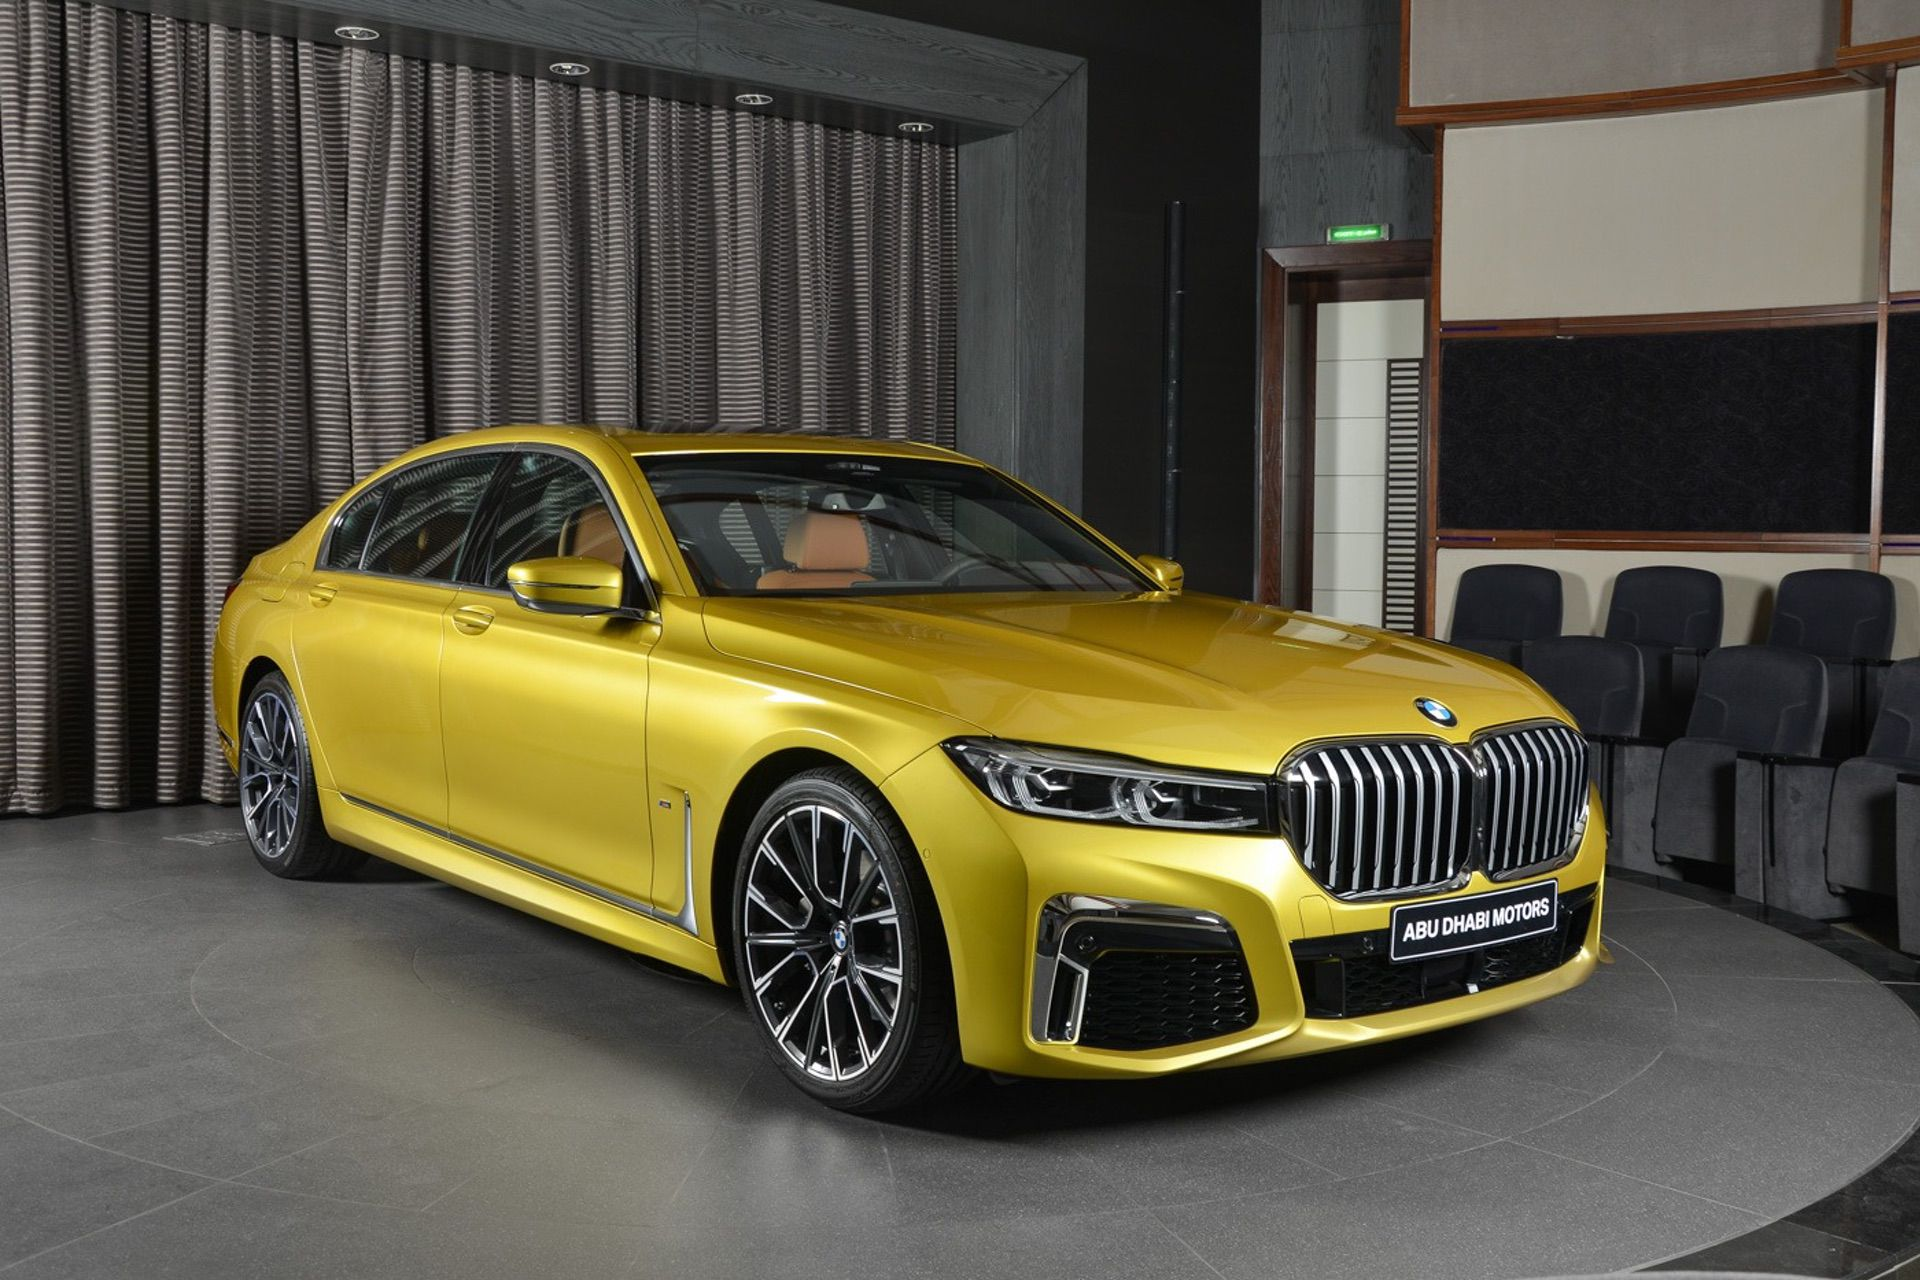 2019 Bmw 7 Series Facelift Gets The Individual Treatment With The